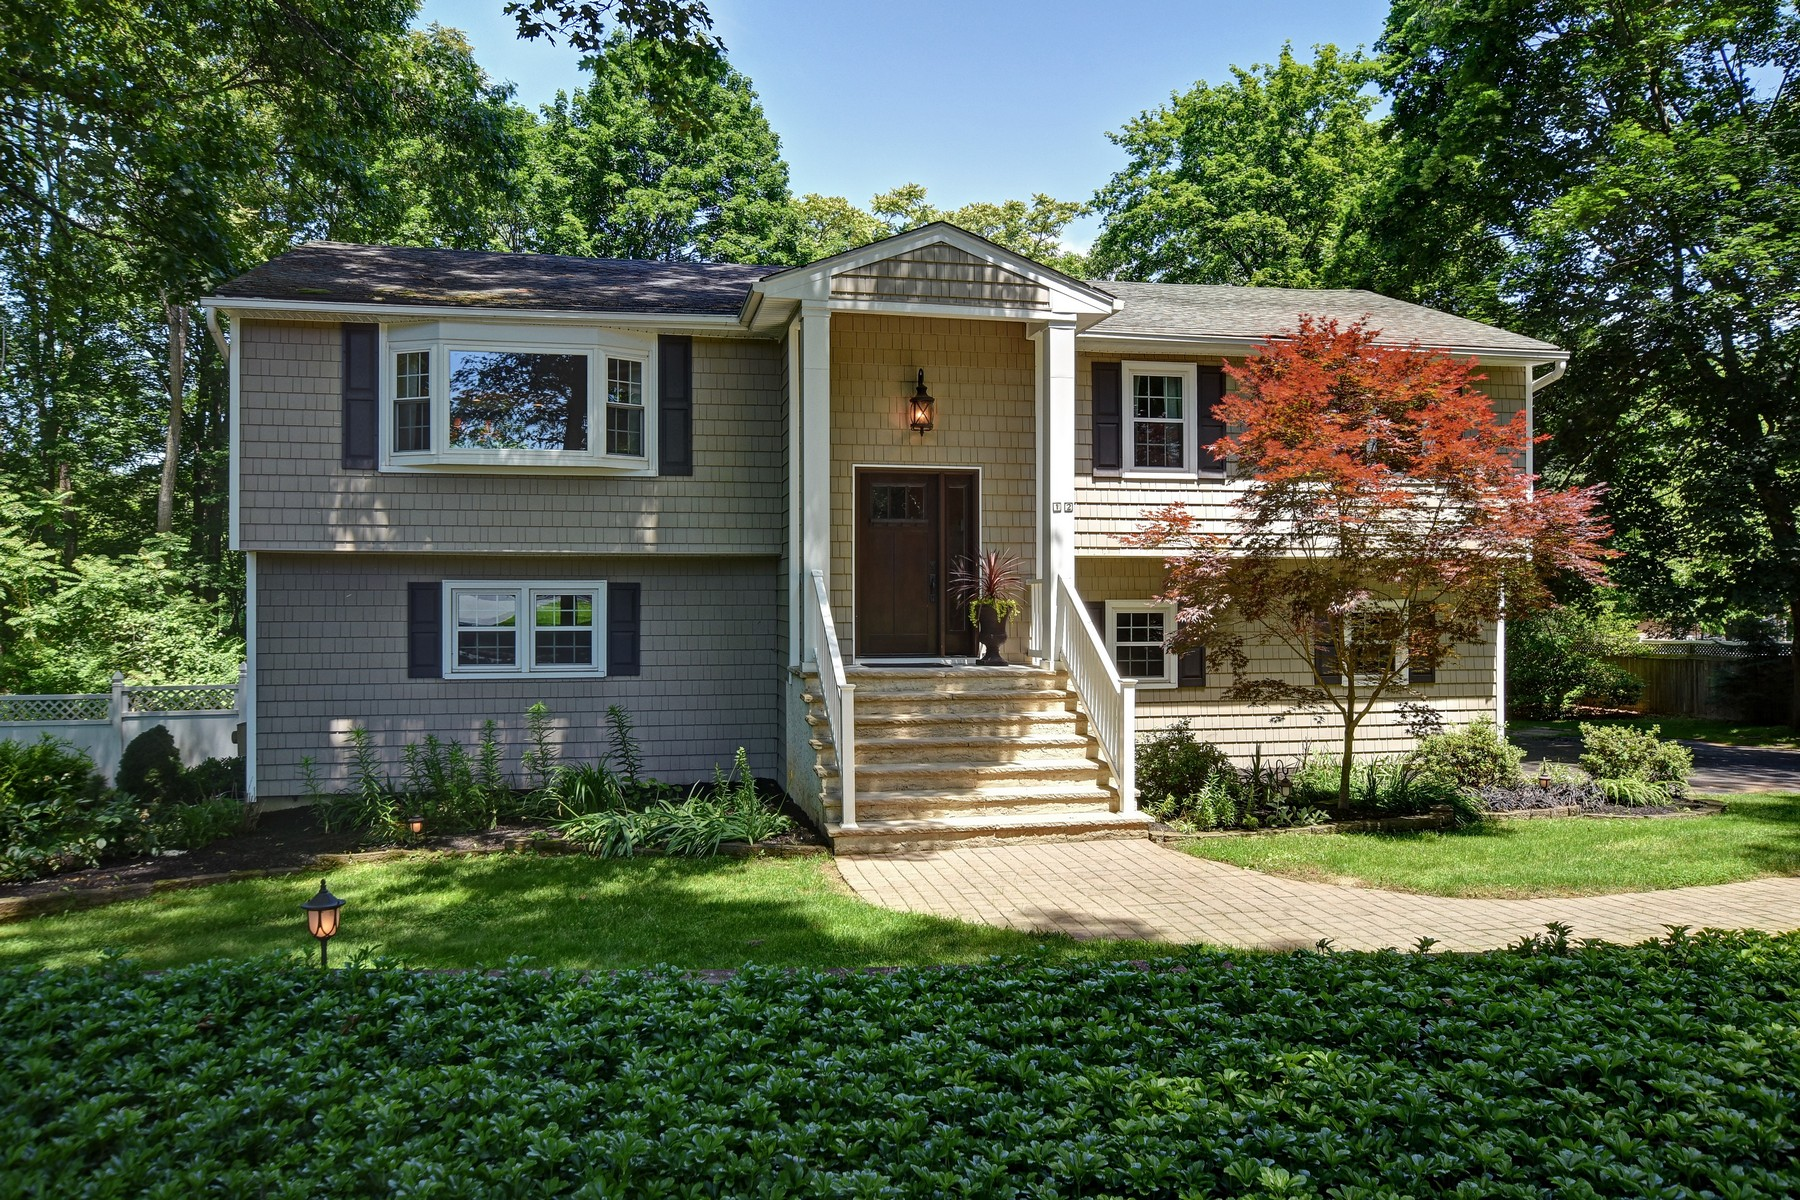 Single Family Home for Sale at 12 Storm Rd., Lincroft Lincroft, New Jersey 07738 United States